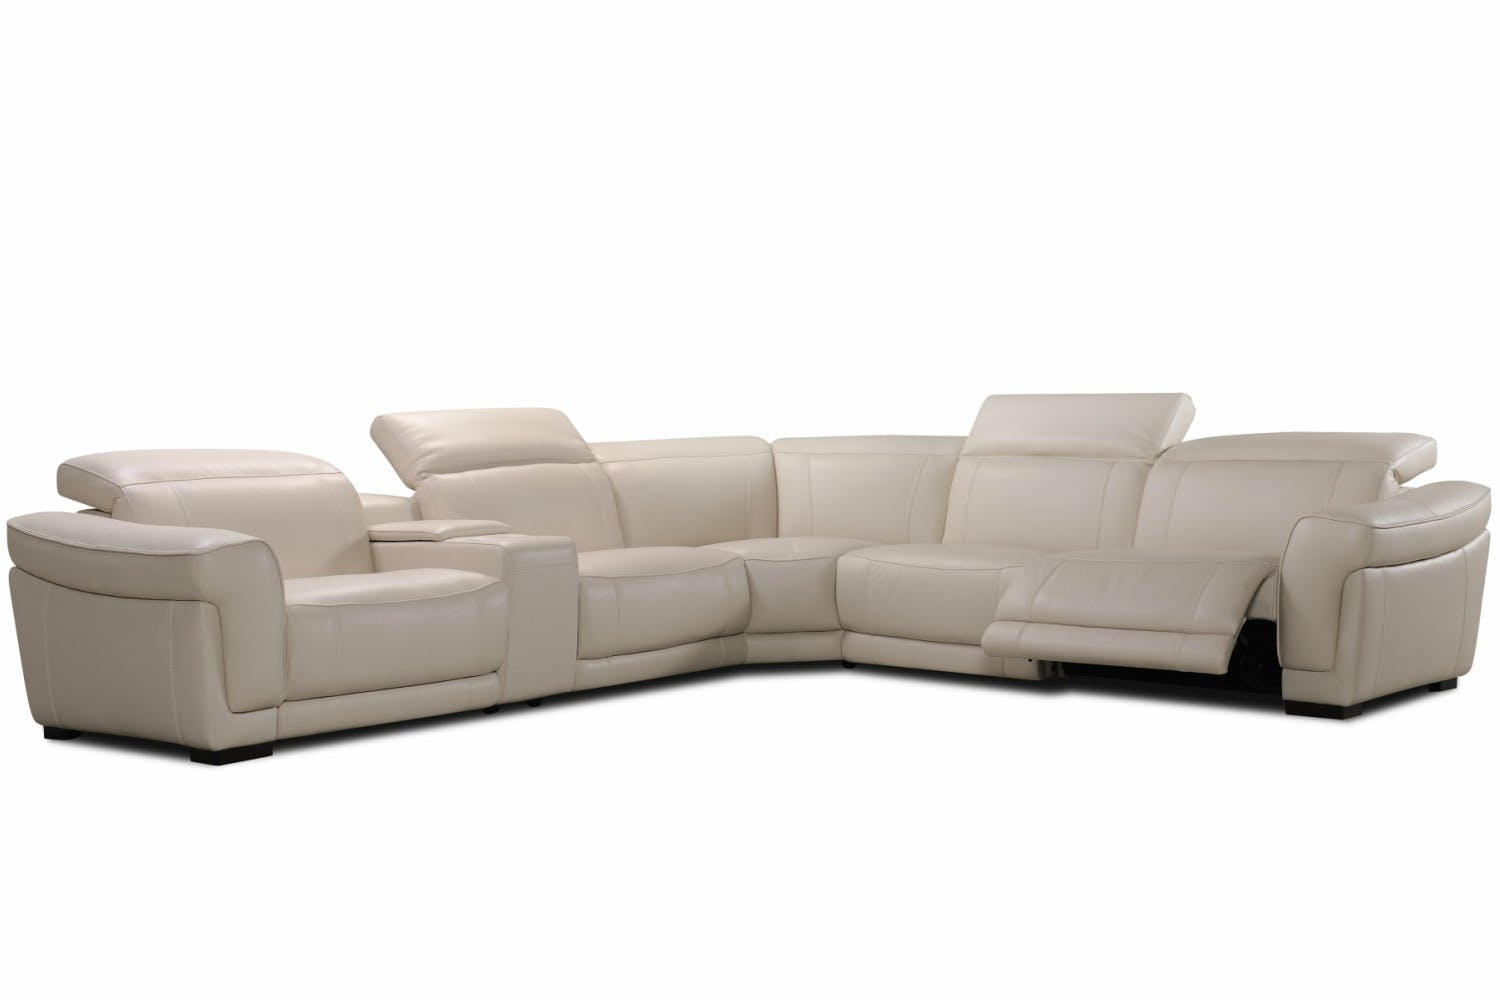 Sonny Corner Sofa Electric Recliner